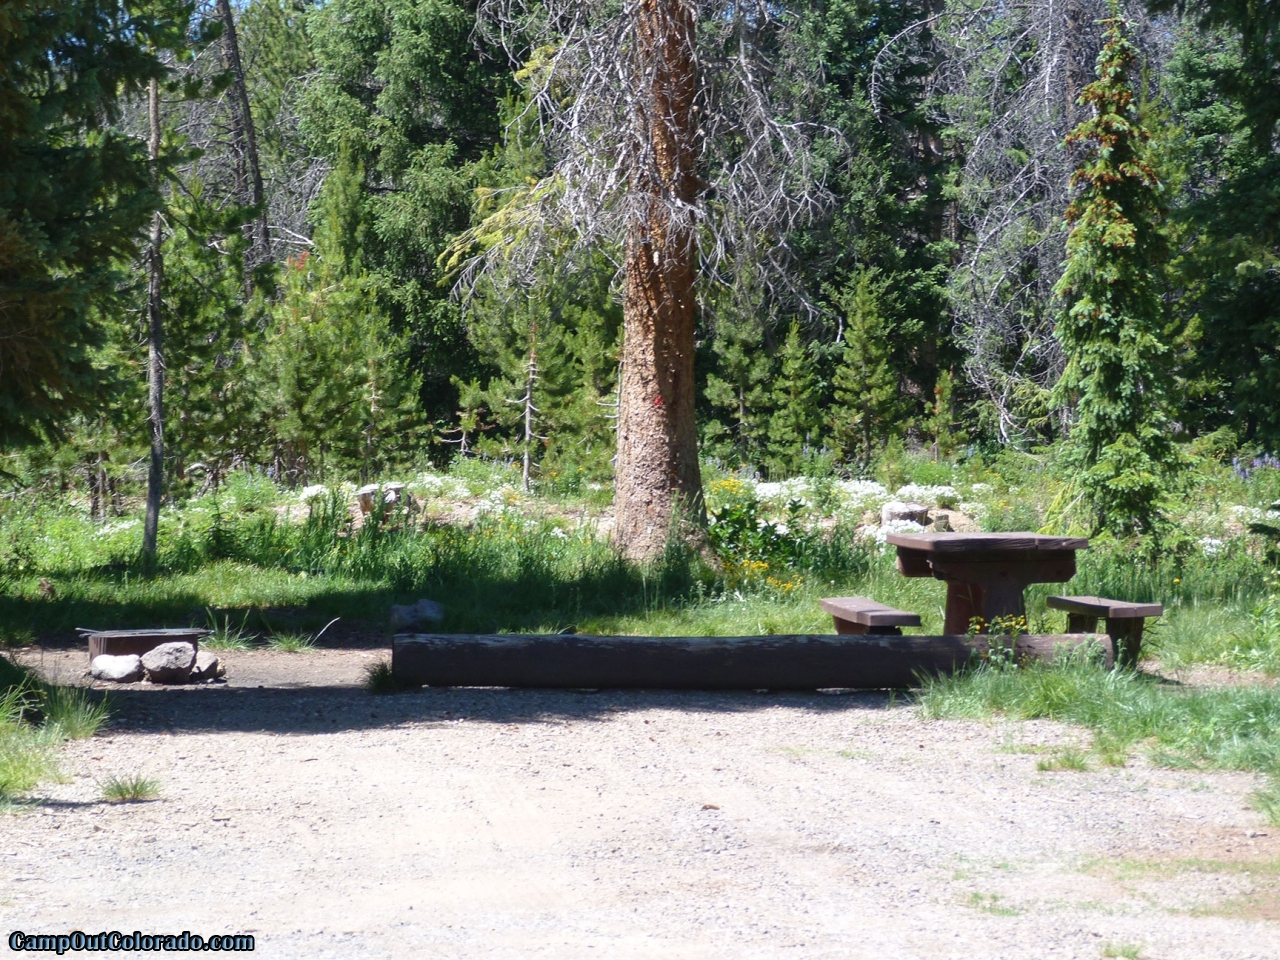 campoutcolorado-meadows-campground-rabbit-ears-flat-camping